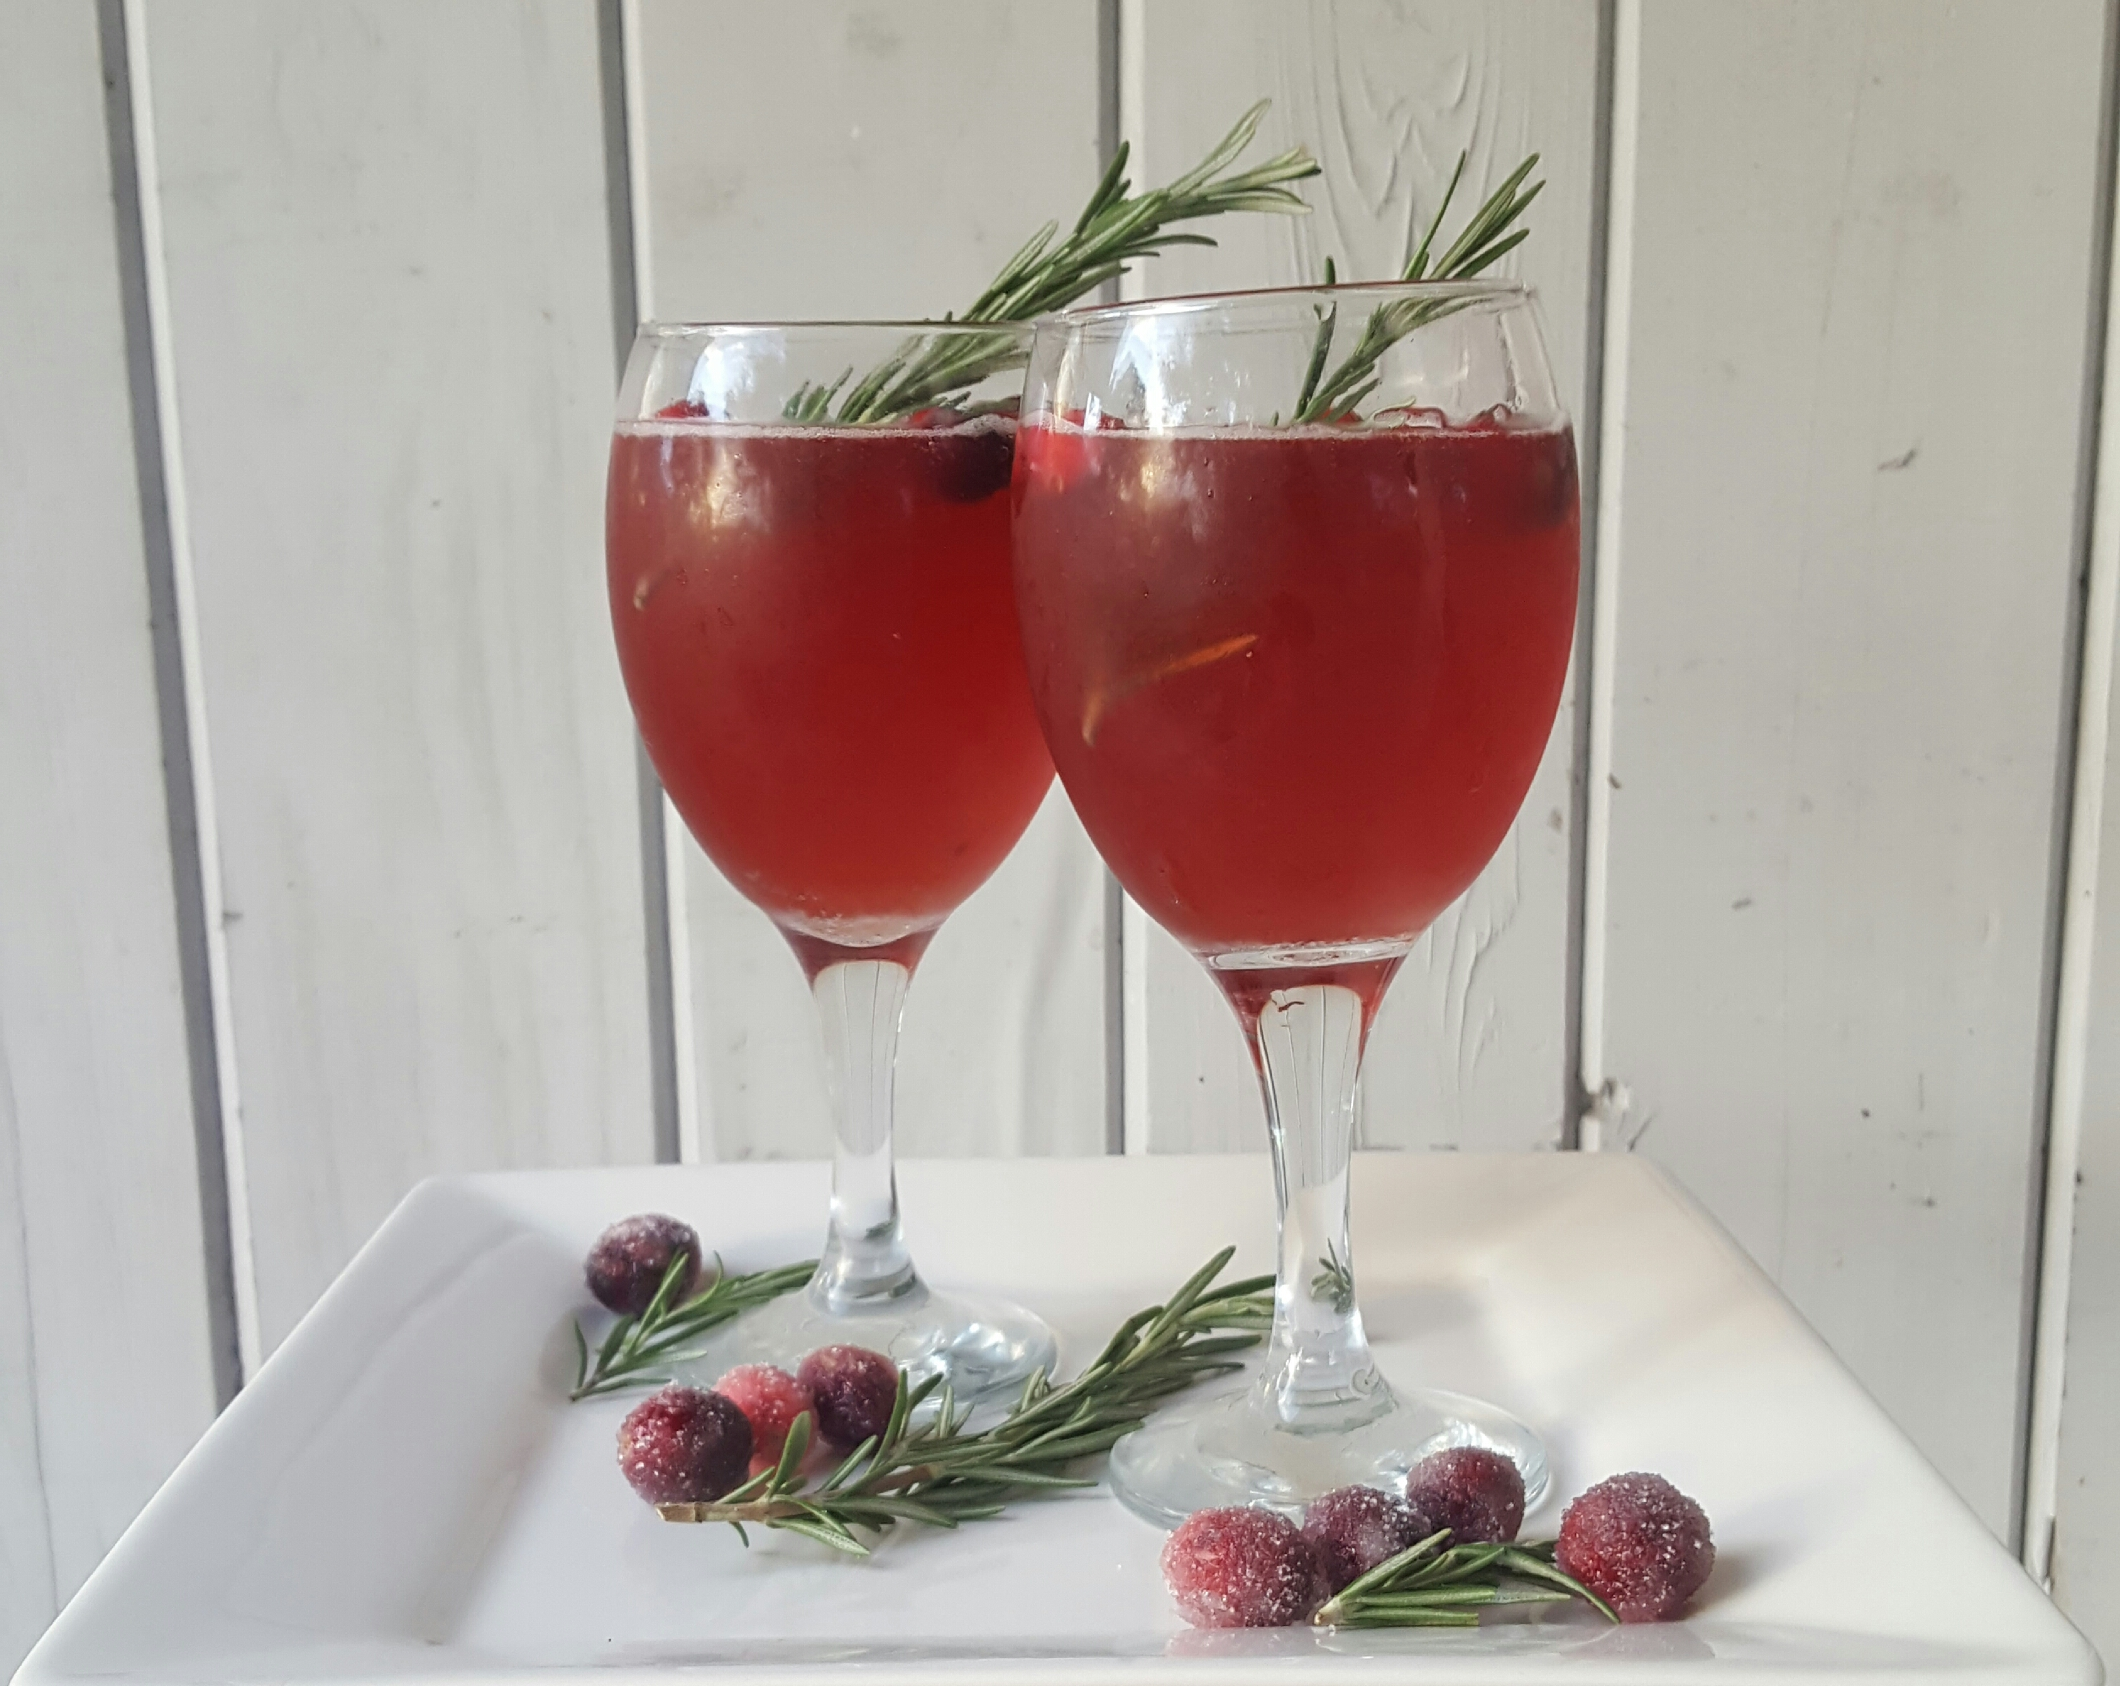 Kombucha disguised to look as alcohol